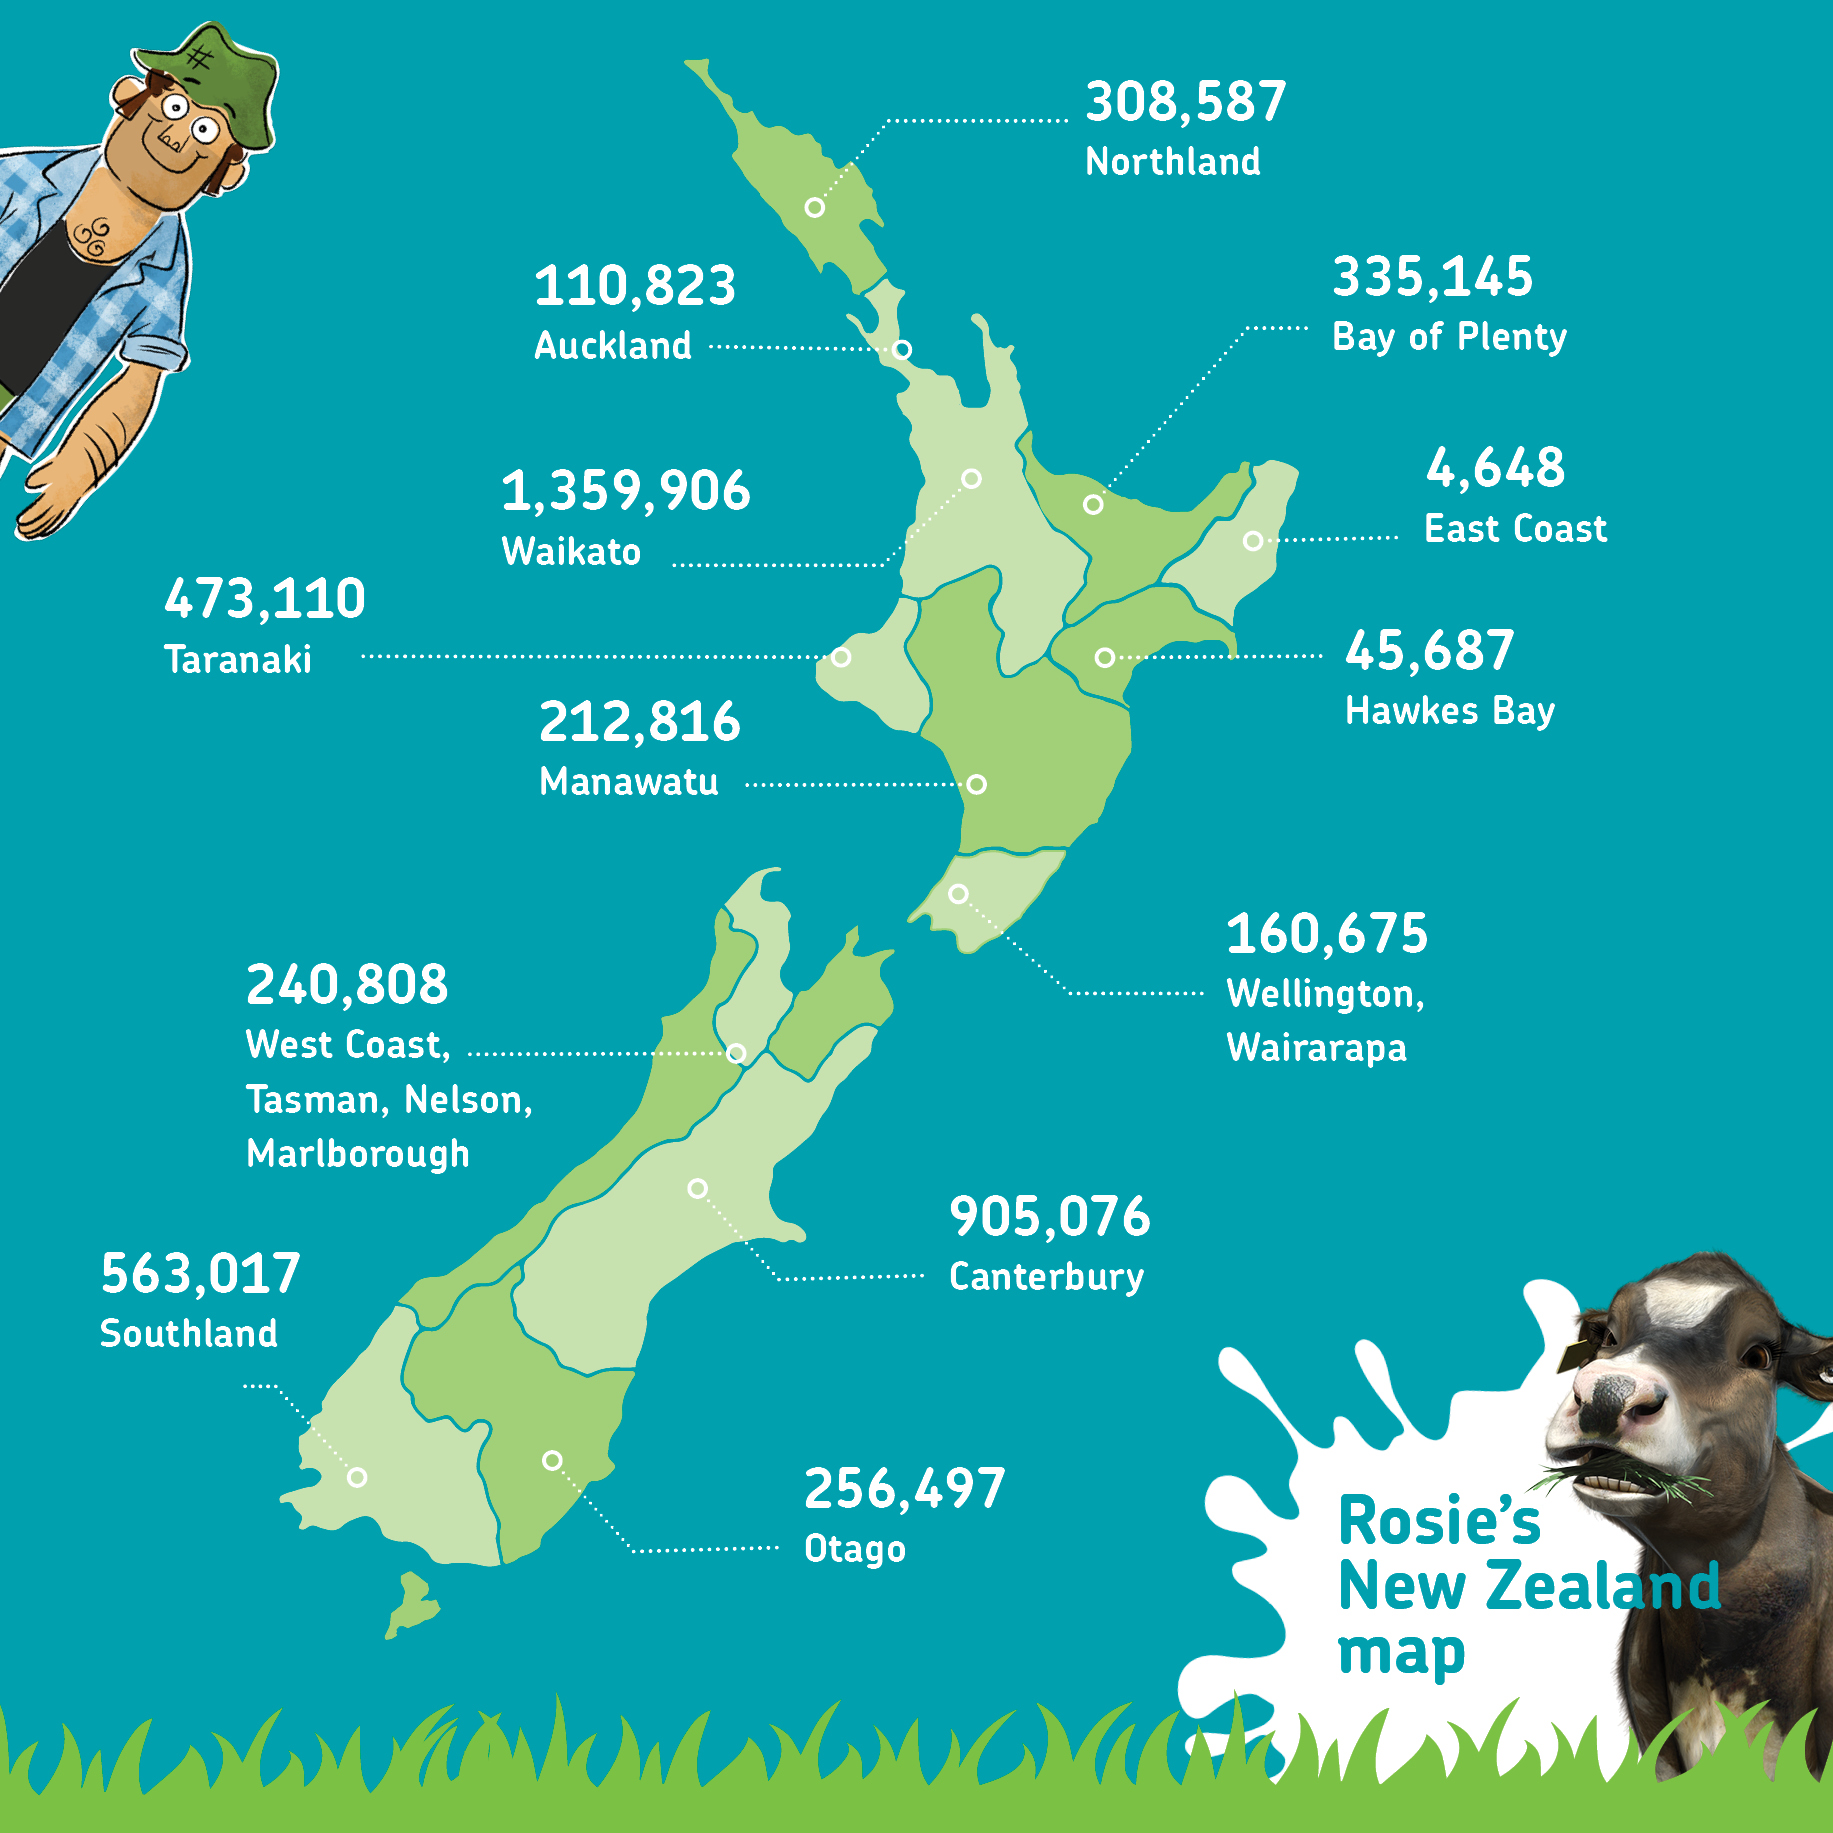 Rosies NZ How Many Cows Map